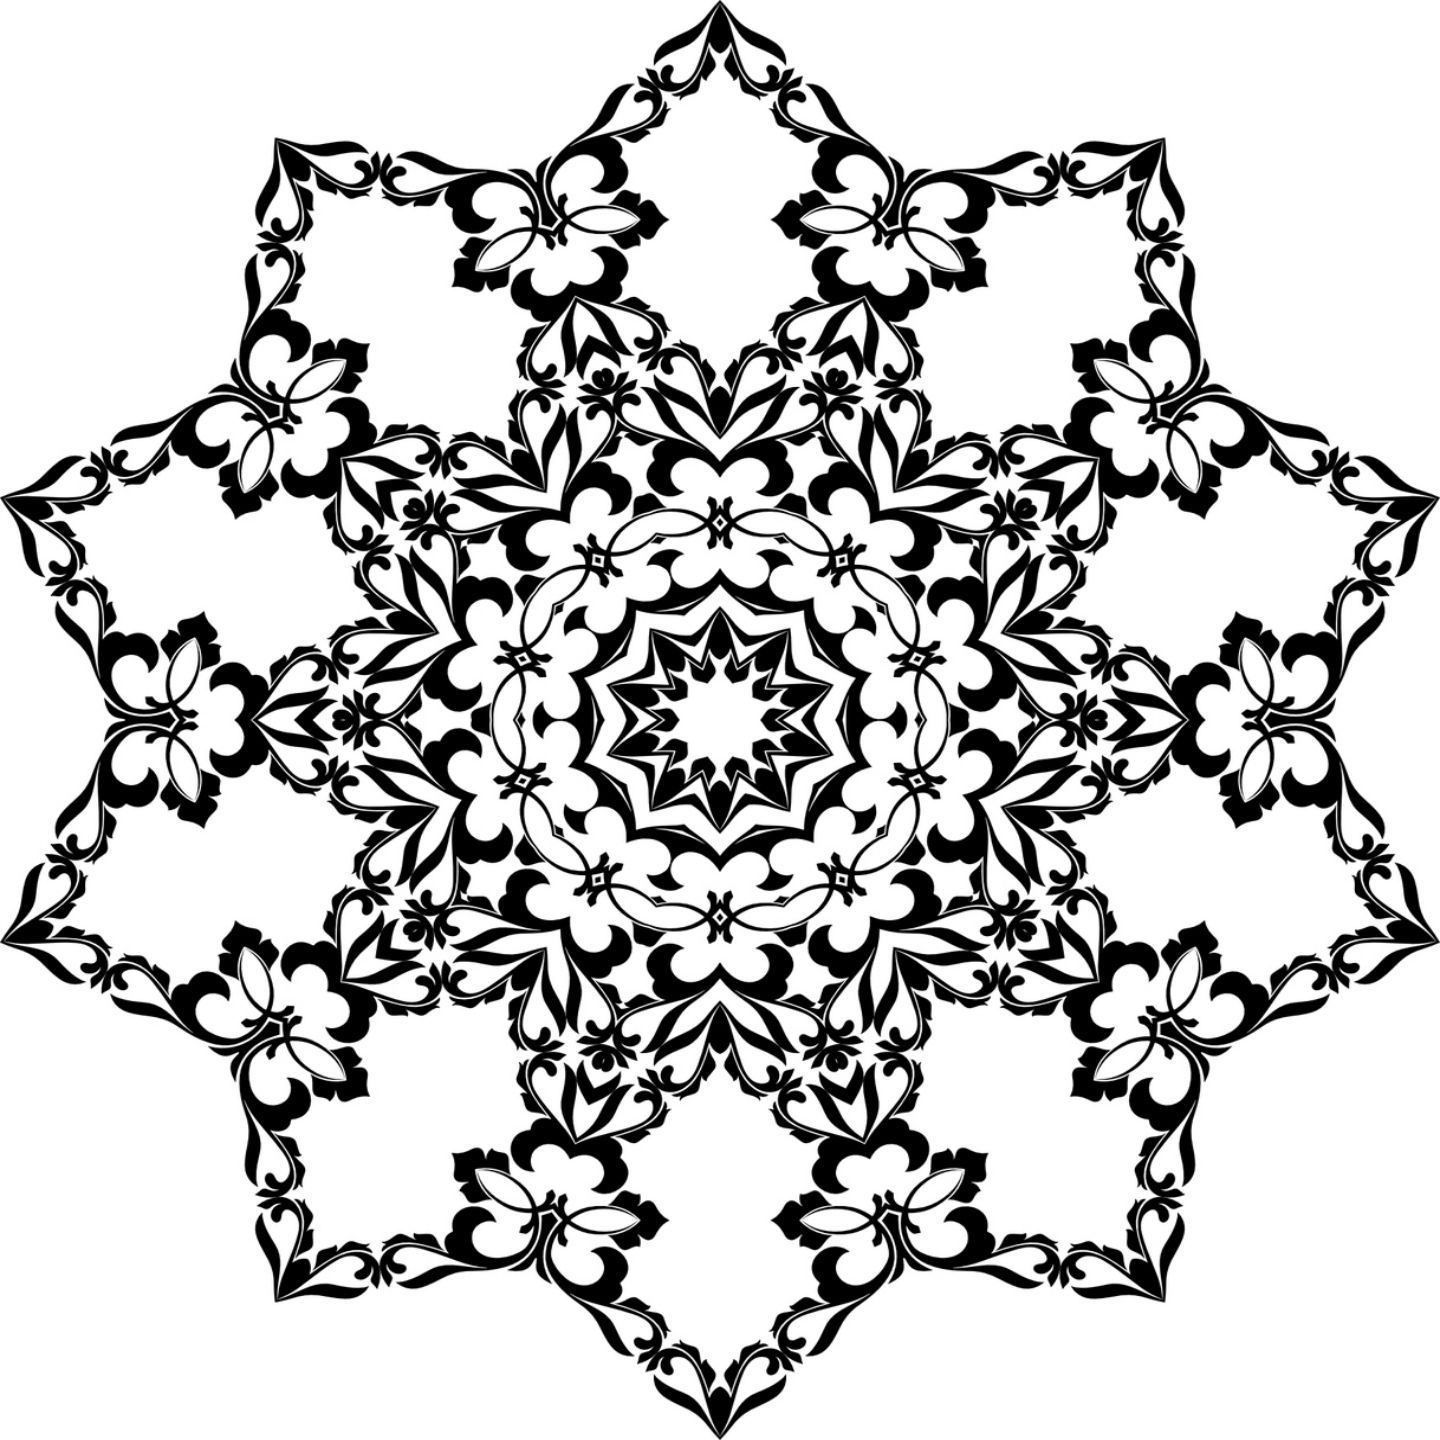 Floral Snowflake Coloring Page for Adults and Kids | Mandala ...